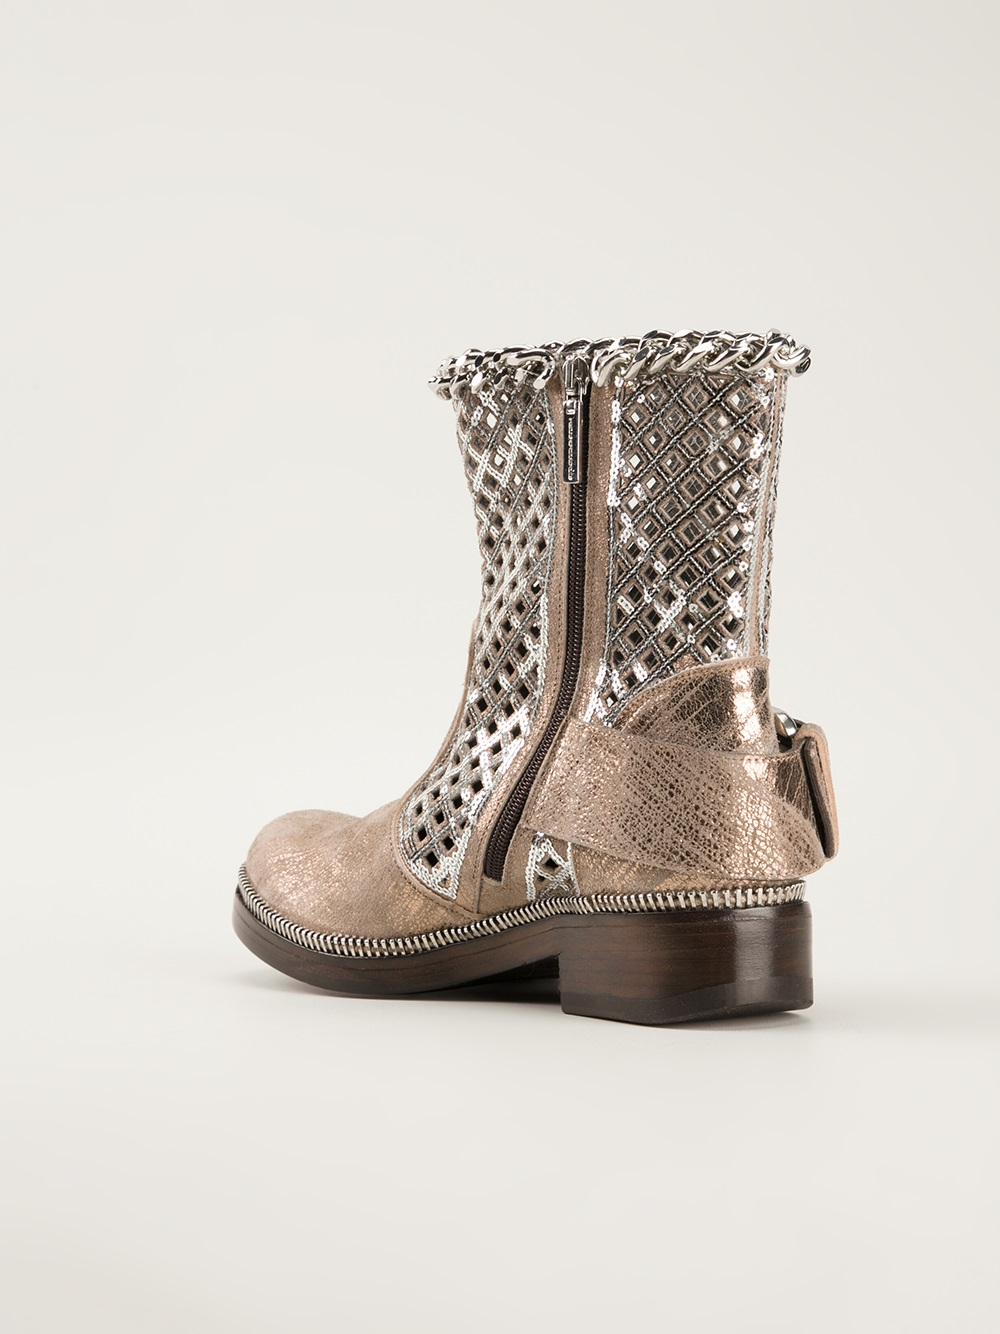 Sale Limited Edition Sale Prices FOOTWEAR - Boots Giancarlo Paoli For Nice Sale Online Cheap Sale Finishline W2gHVBG